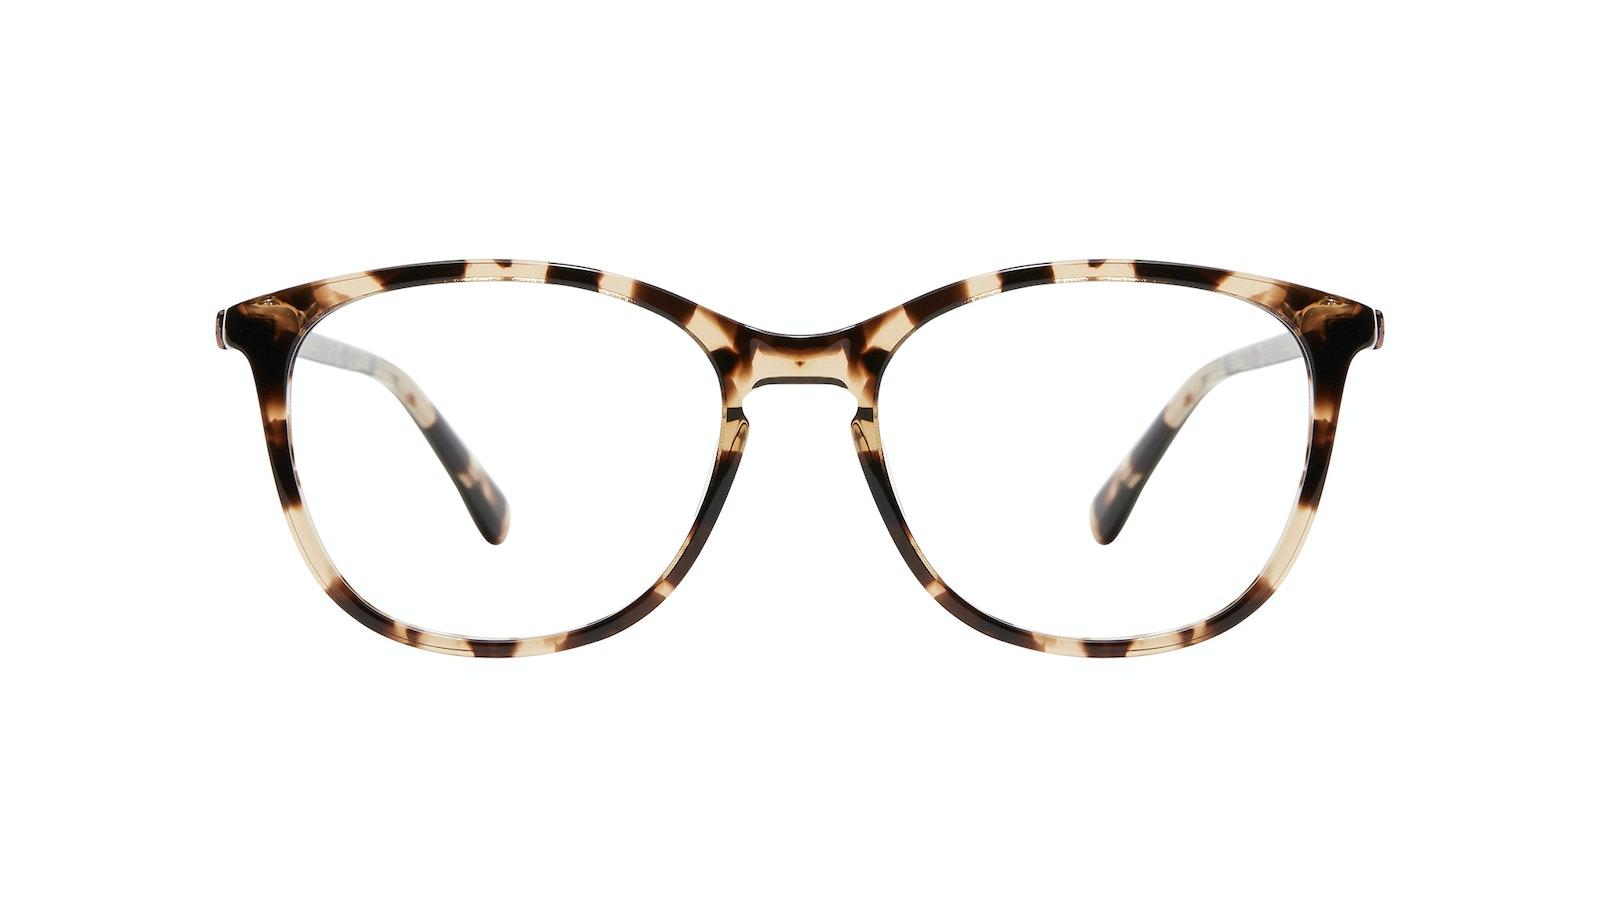 Affordable Fashion Glasses Rectangle Square Round Eyeglasses Women Nadine S Snake Skin